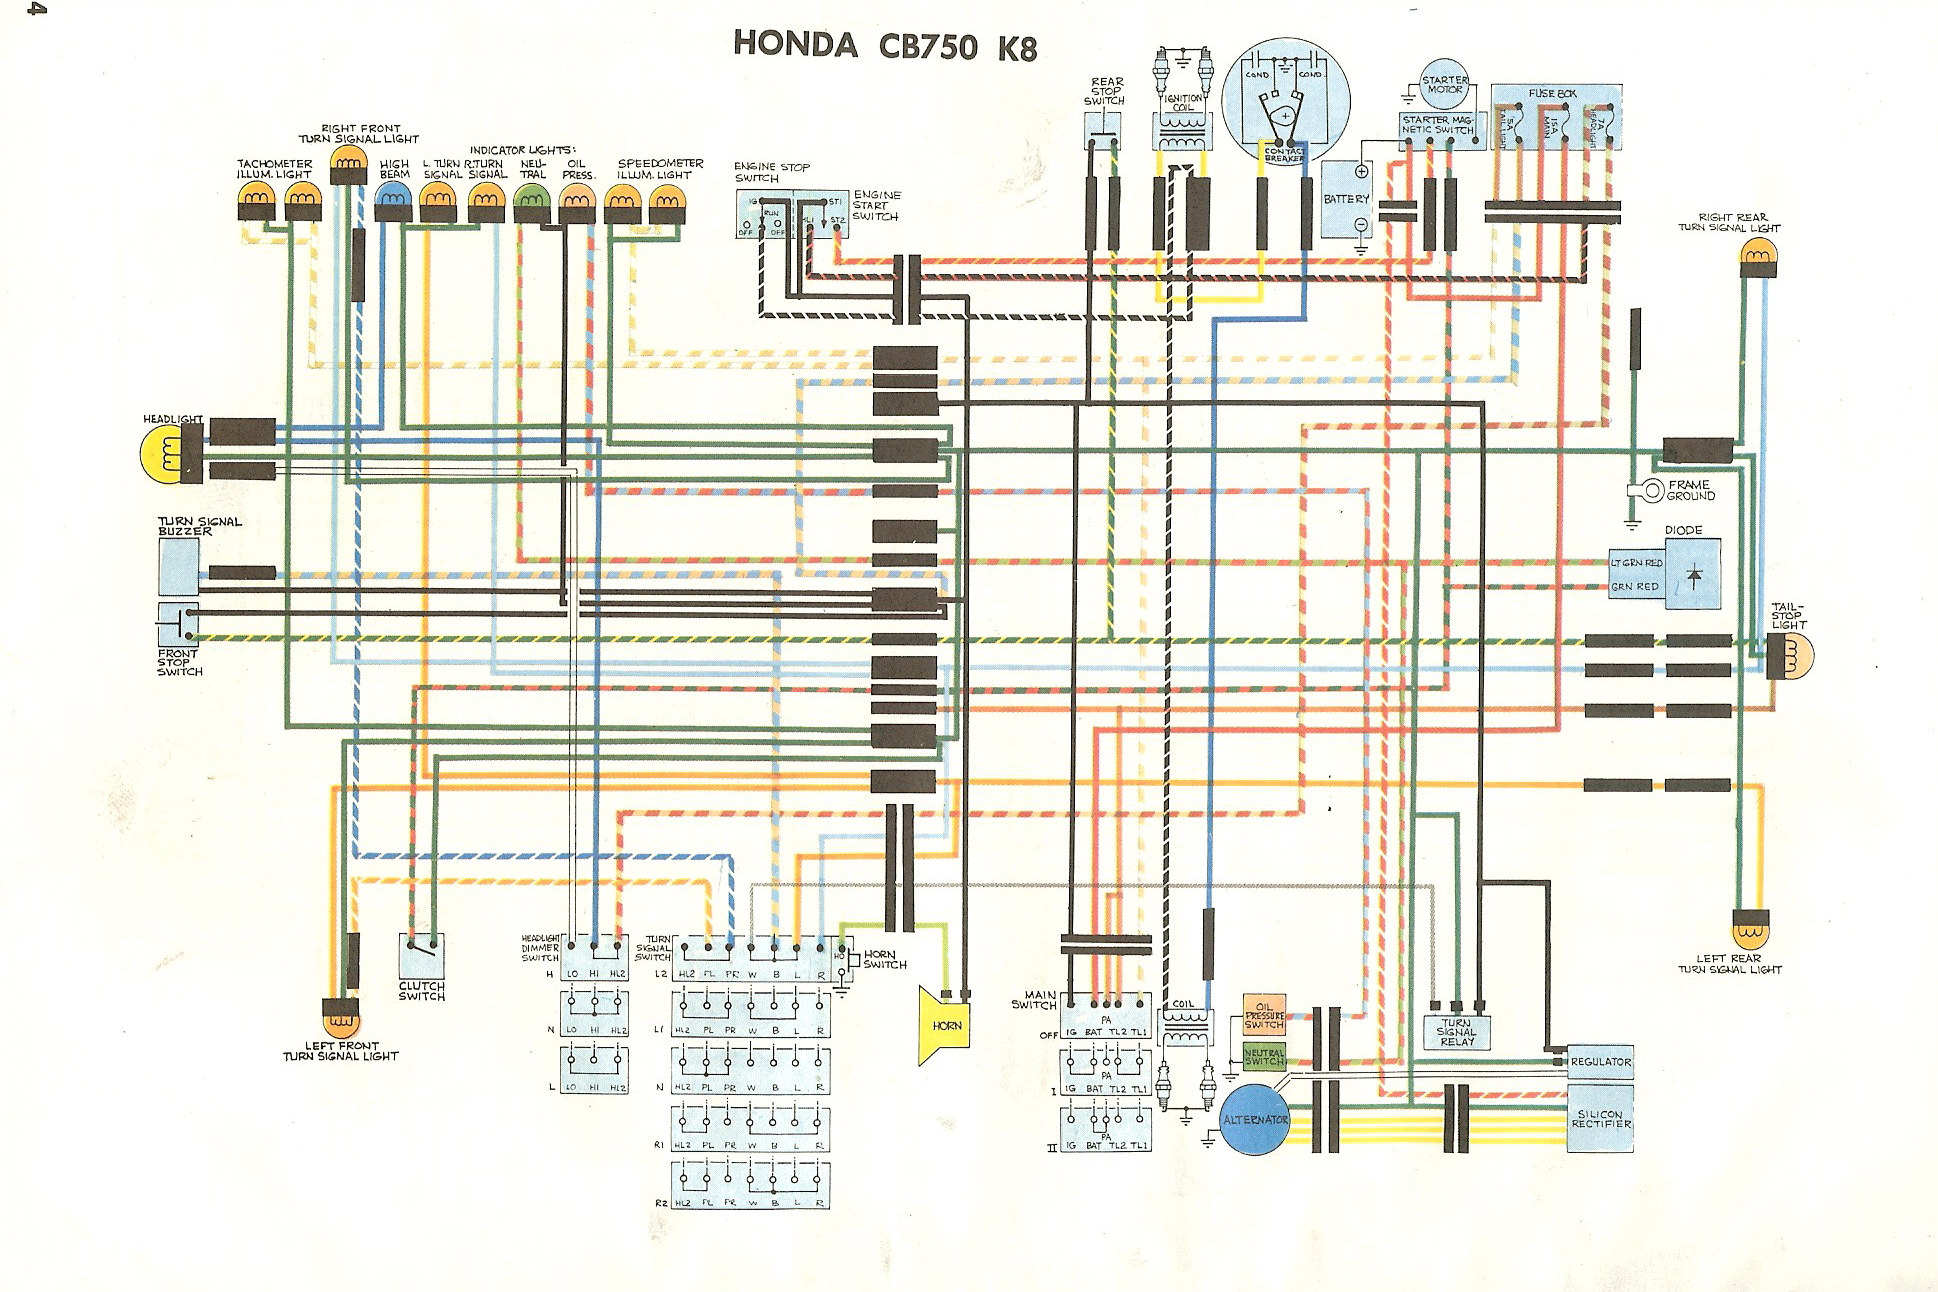 1975 cb750 wiring diagram #16 1971 Honda 750 Four Wiring-Diagram 1975 cb750 wiring diagram